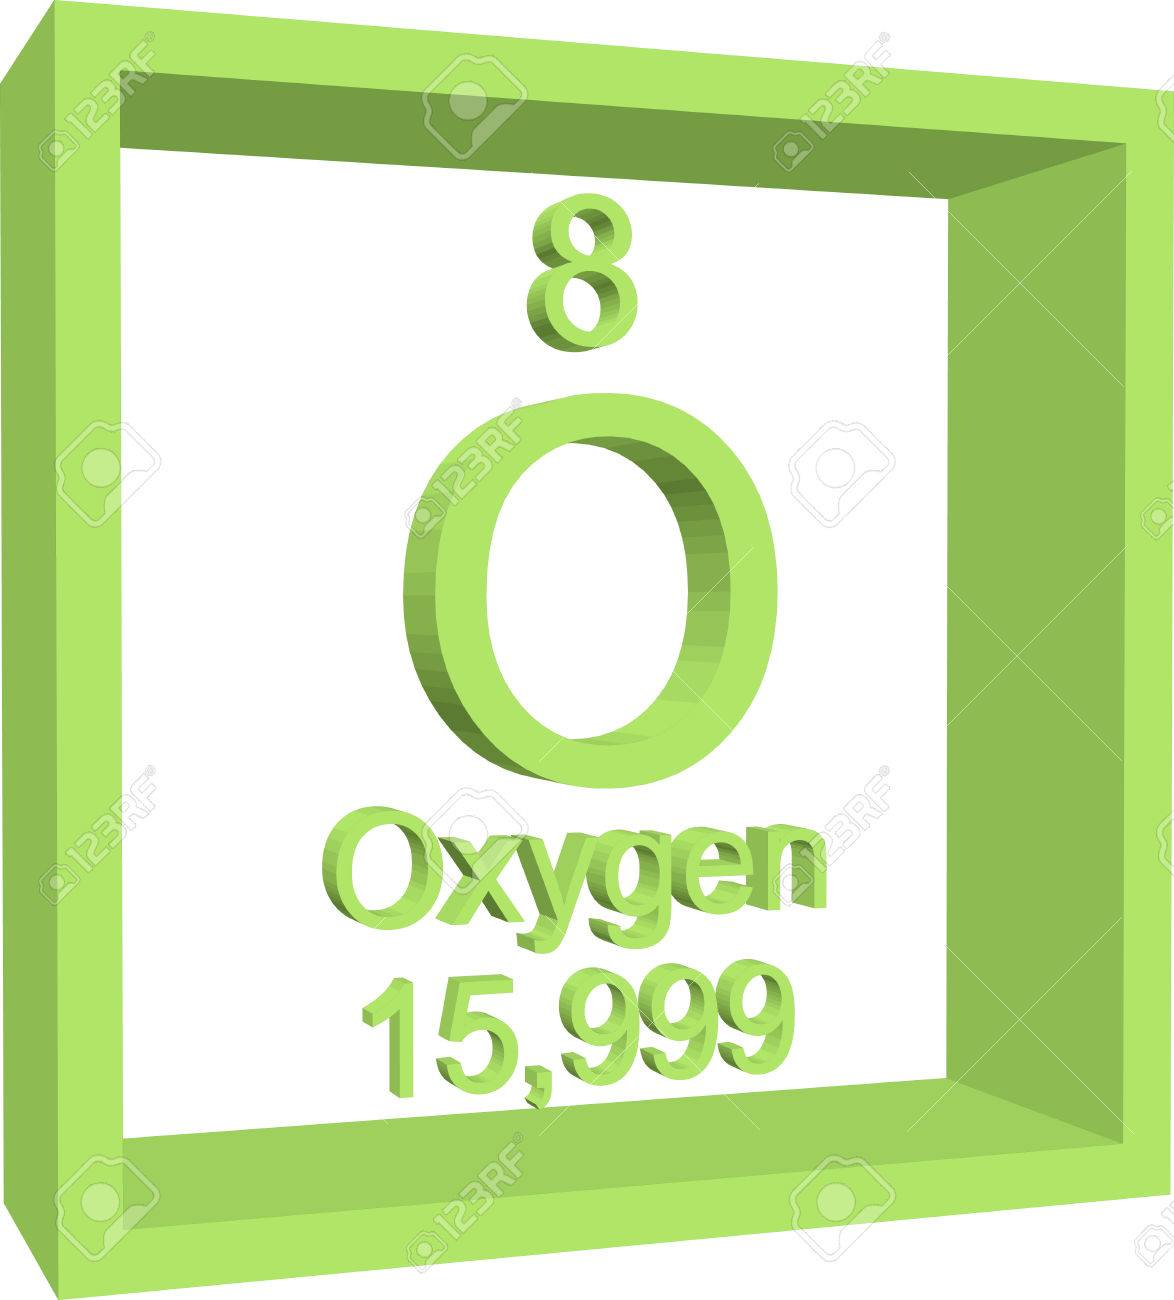 Oxygen periodic table image collections periodic table images periodic table of elements oxygen gallery periodic table images periodic table of elements oxygen image collections gamestrikefo Images